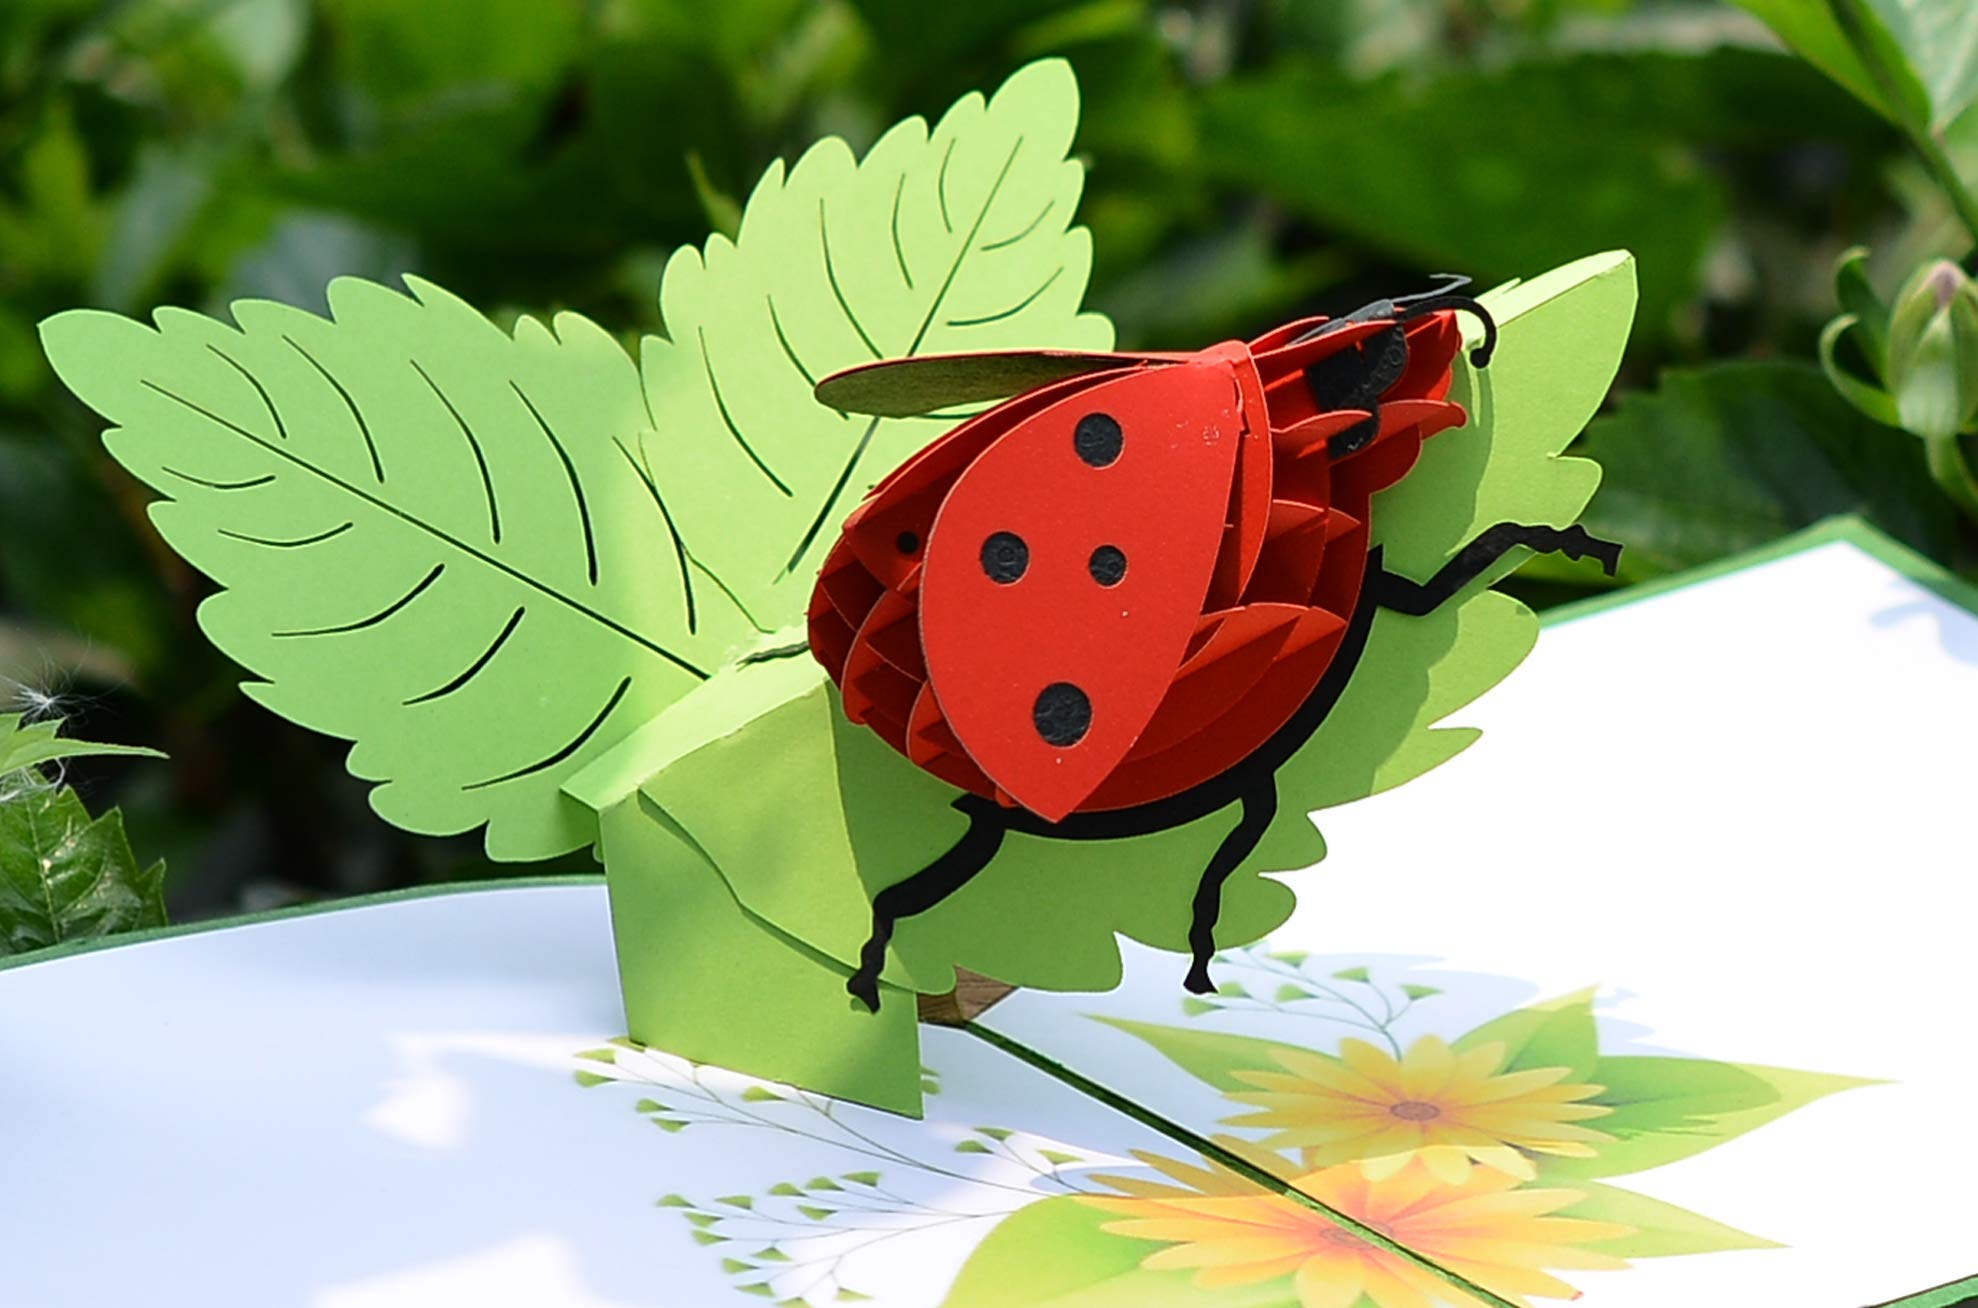 CUTPOPUP Mothers Day Pop Up Card with Ladybug- Sophisticated Design, Highly Handmade Skilled- Great Gift for Kids & Animal Lover in Birthday, Anniversaries,Wedding- Includes elegant envelope